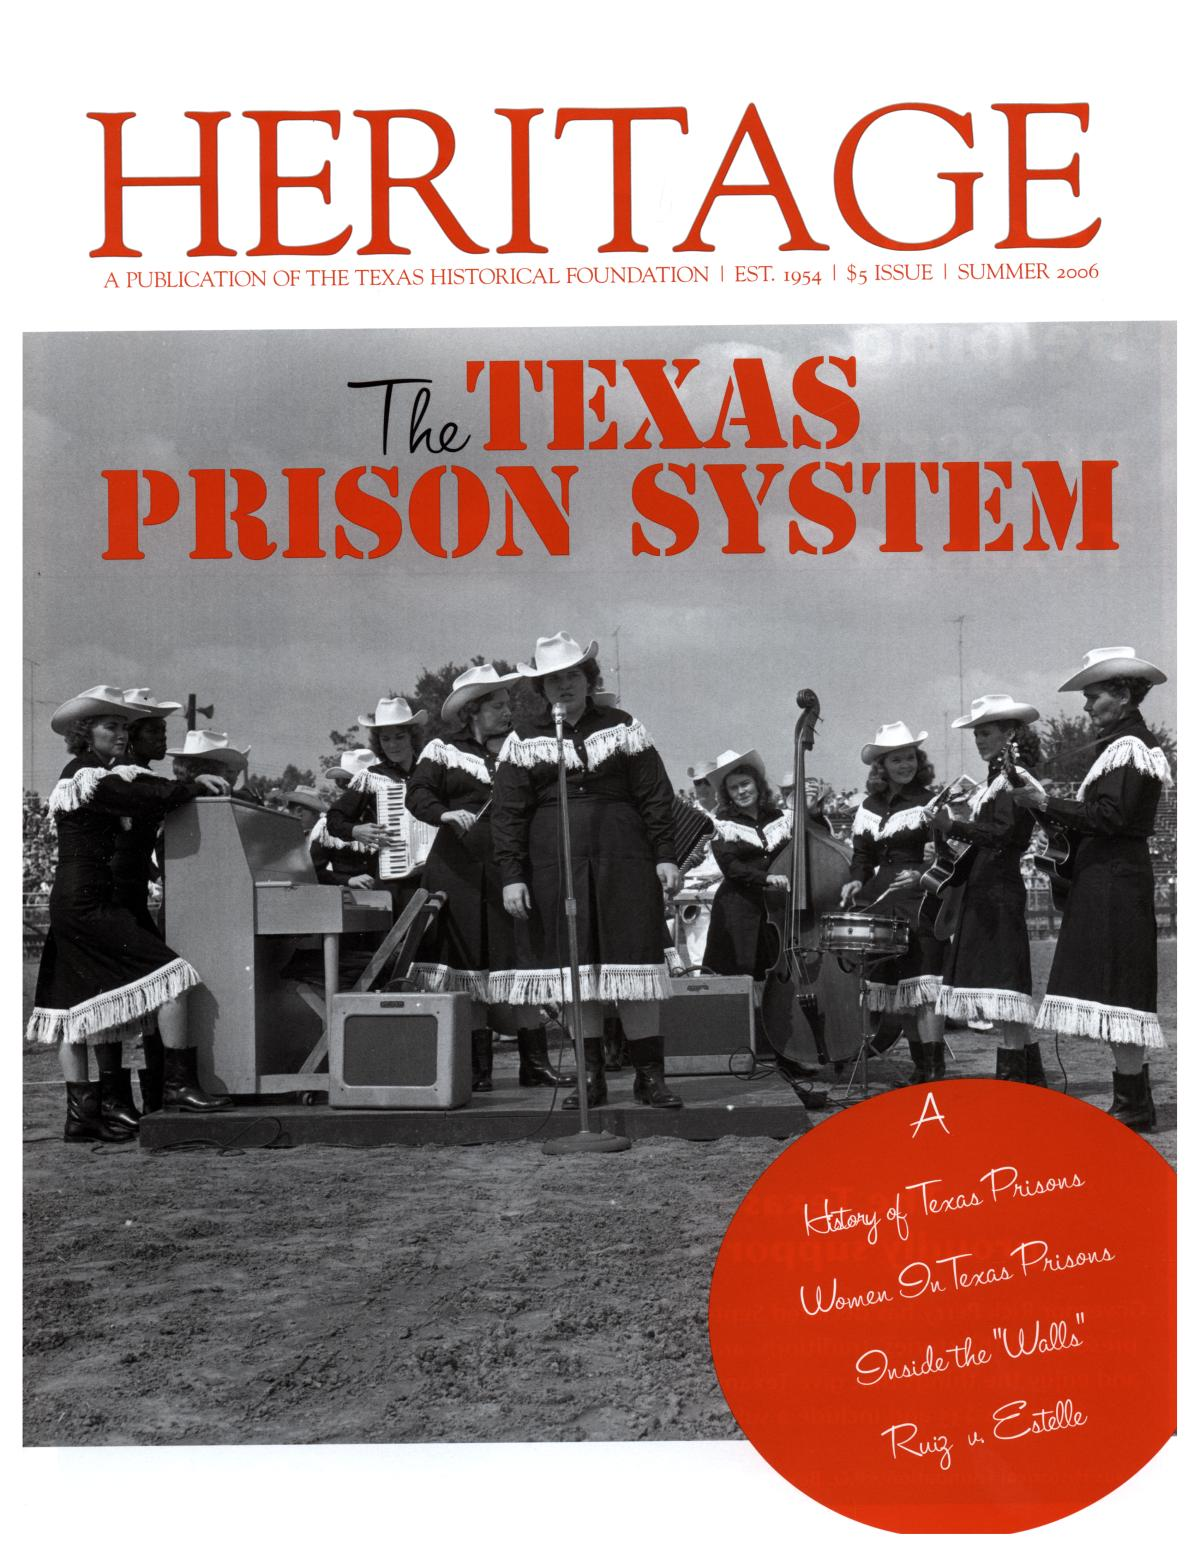 Heritage, Summer 2006                                                                                                      Front Cover